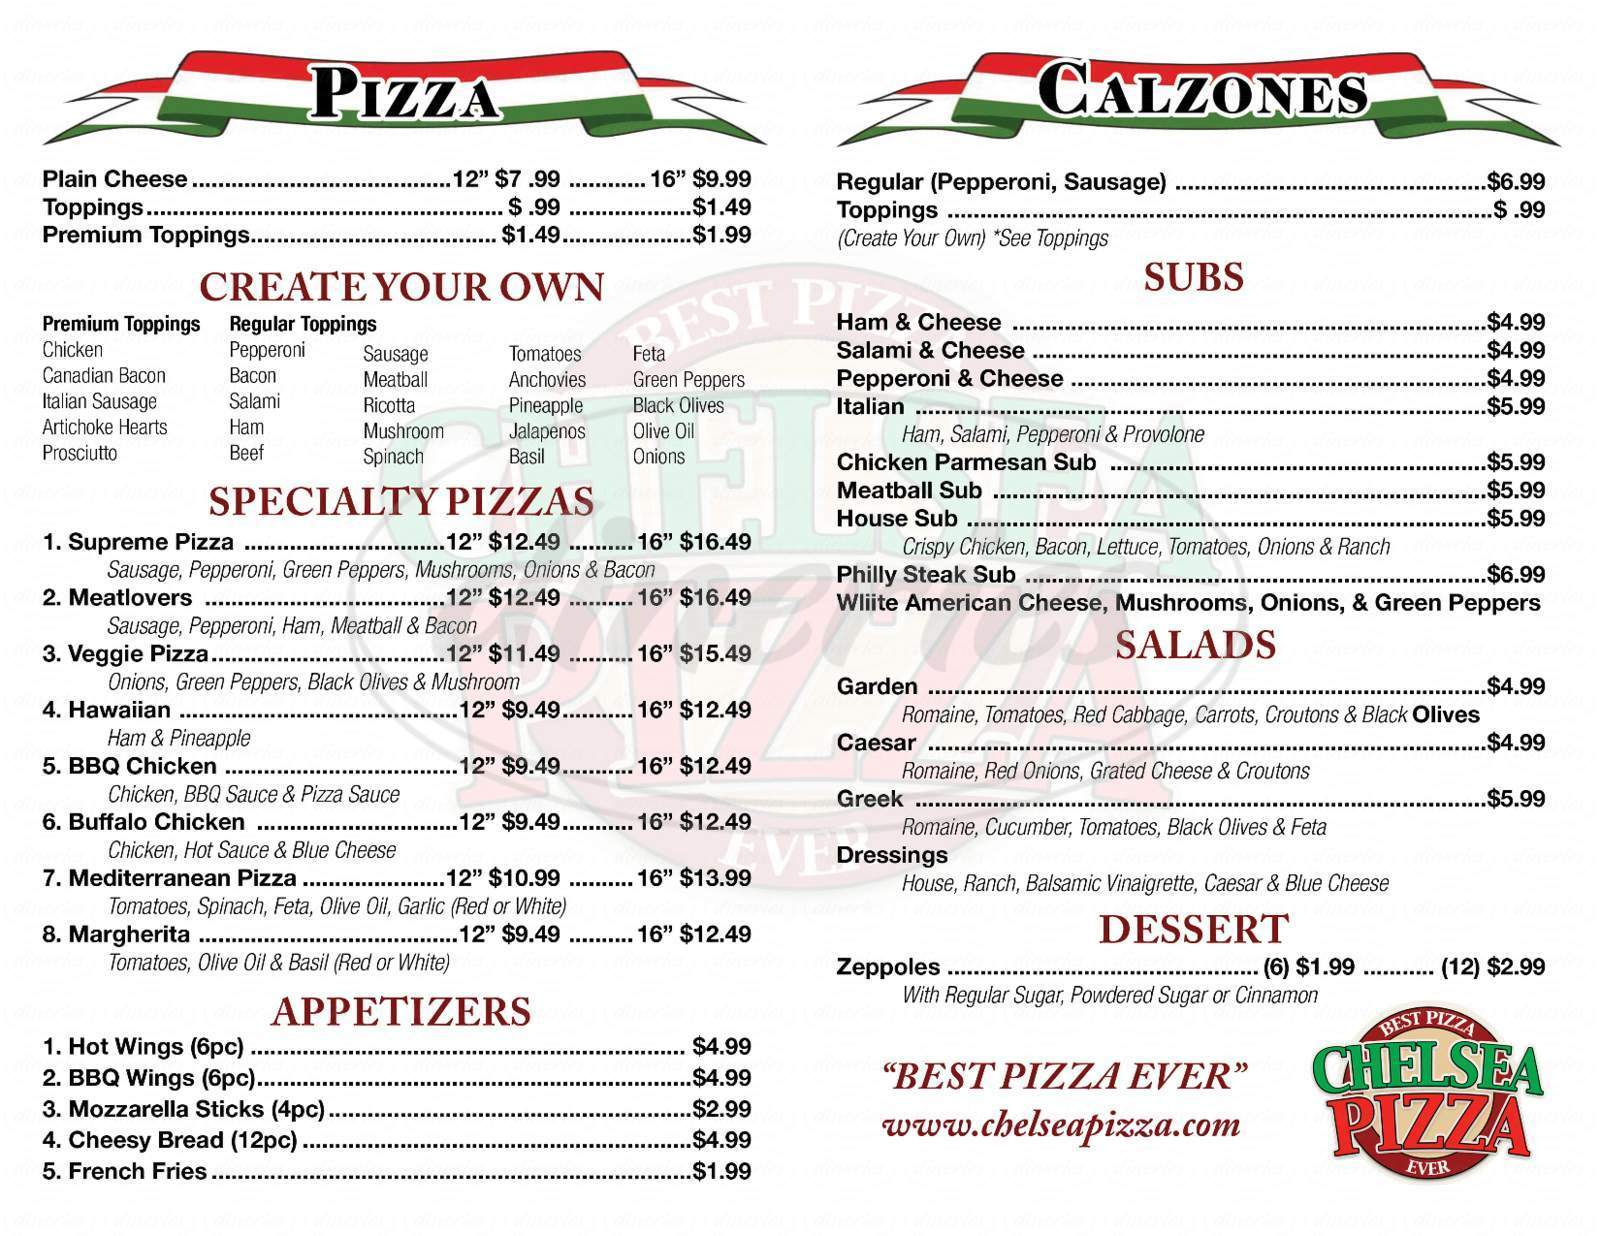 menu for Chelsea Pizza